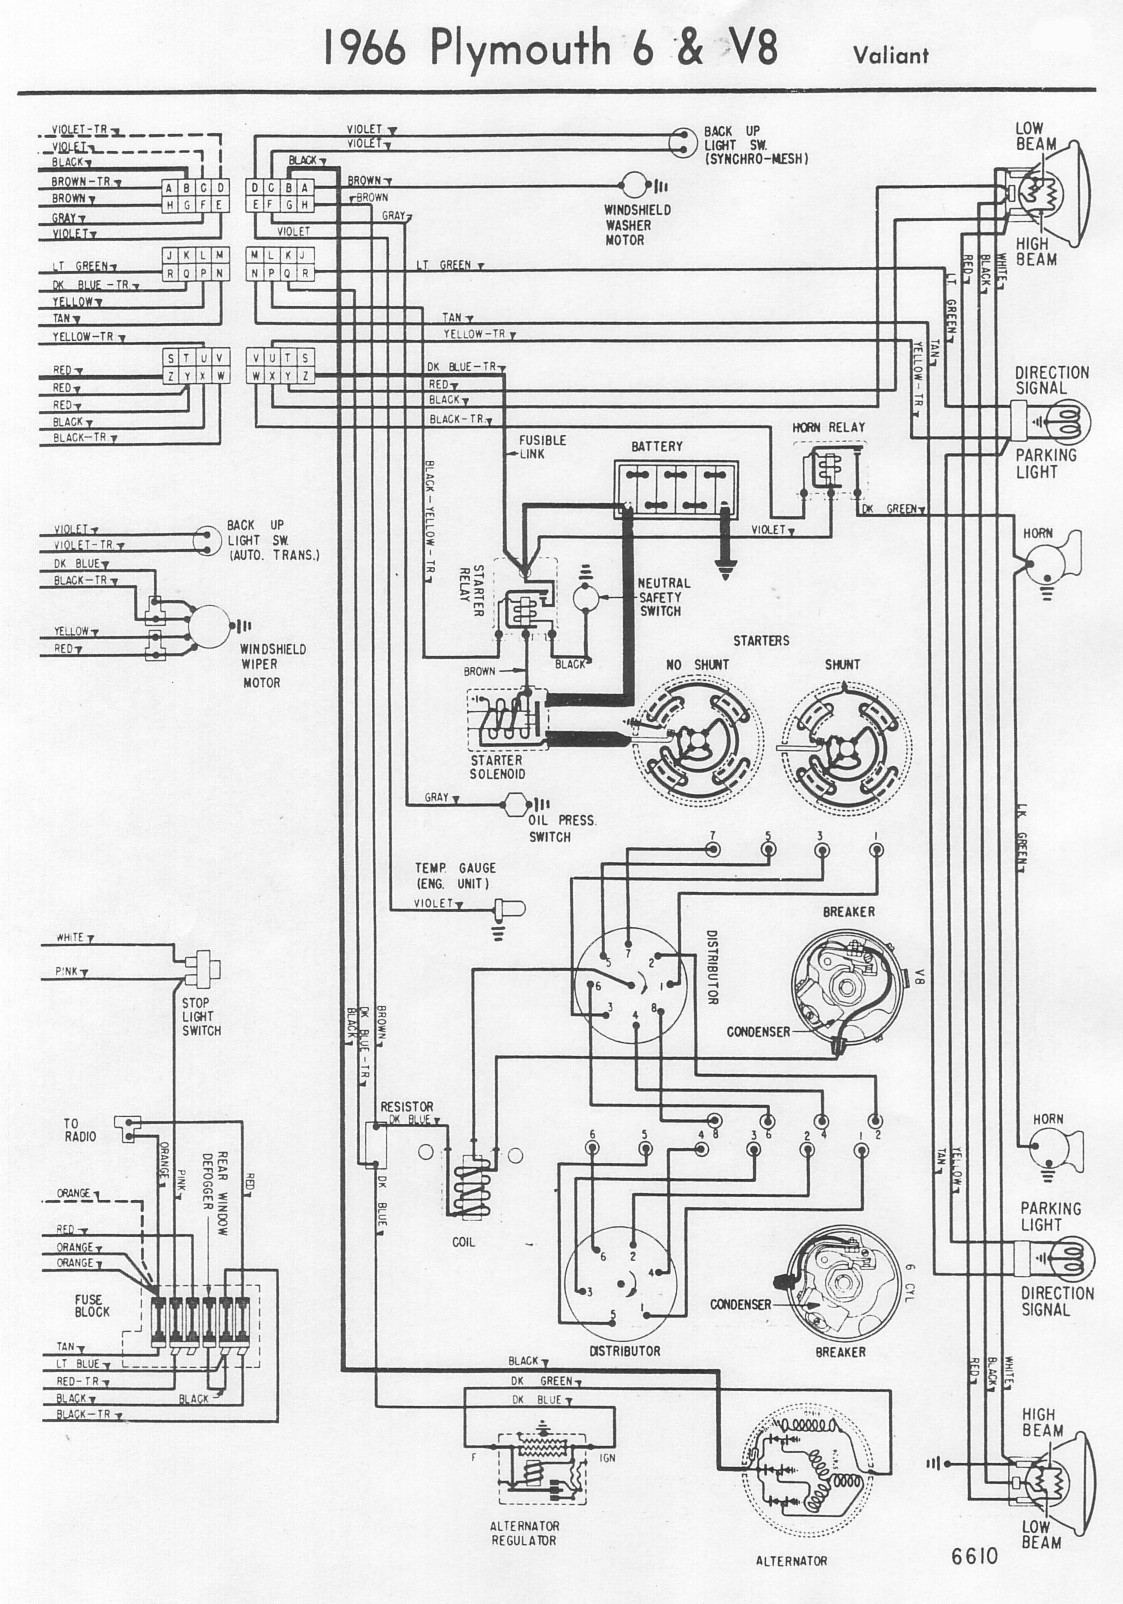 wiring diagrams rh earlycuda org 67 Plymouth Valiant Fiberglass Hood Plymouth Valiant